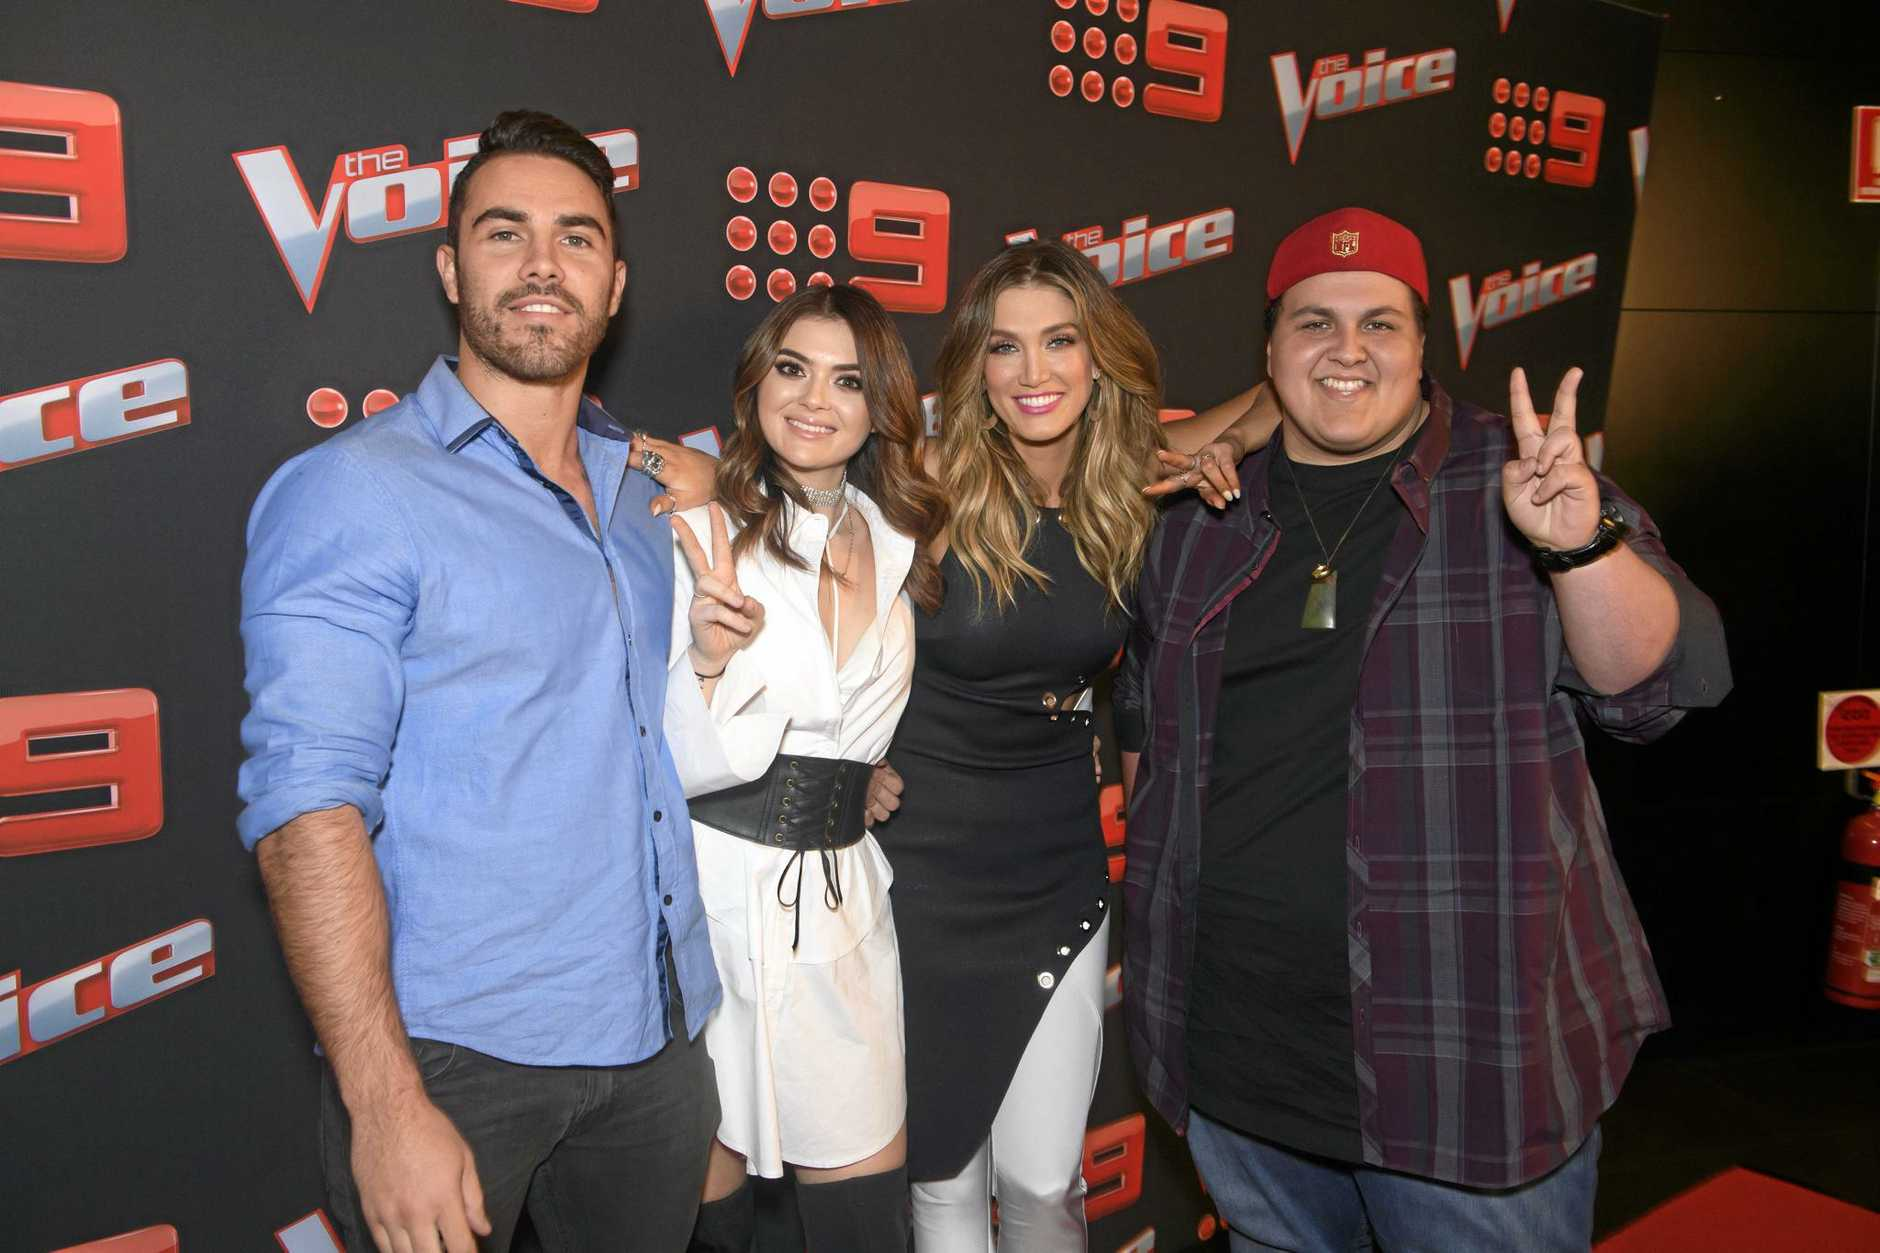 TEAM DELTA: Tim Conlon, Claire Howell, Delta Goodrem and Judah Kelly.